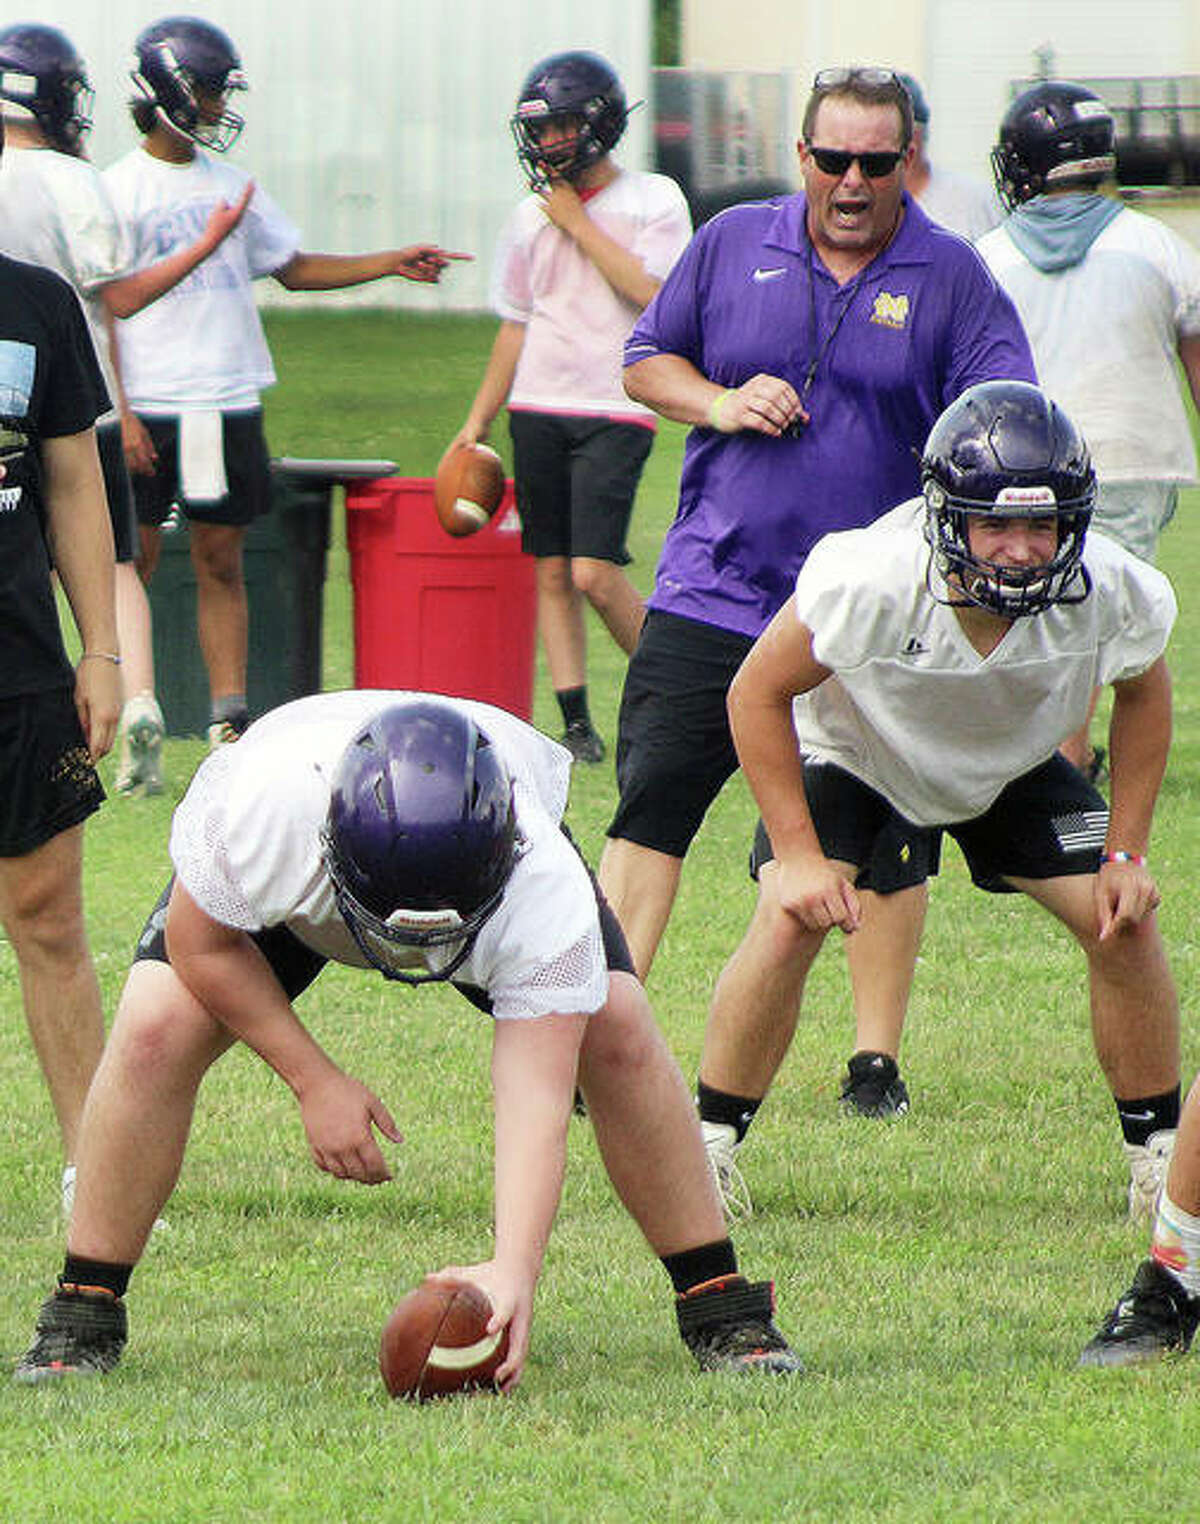 Civic Memorial head coach Mike Parmentier shouts out signals during a preseason drill. The Eagles open their season Aug. 27 against Marquette Catholic High at Public School Stadium.